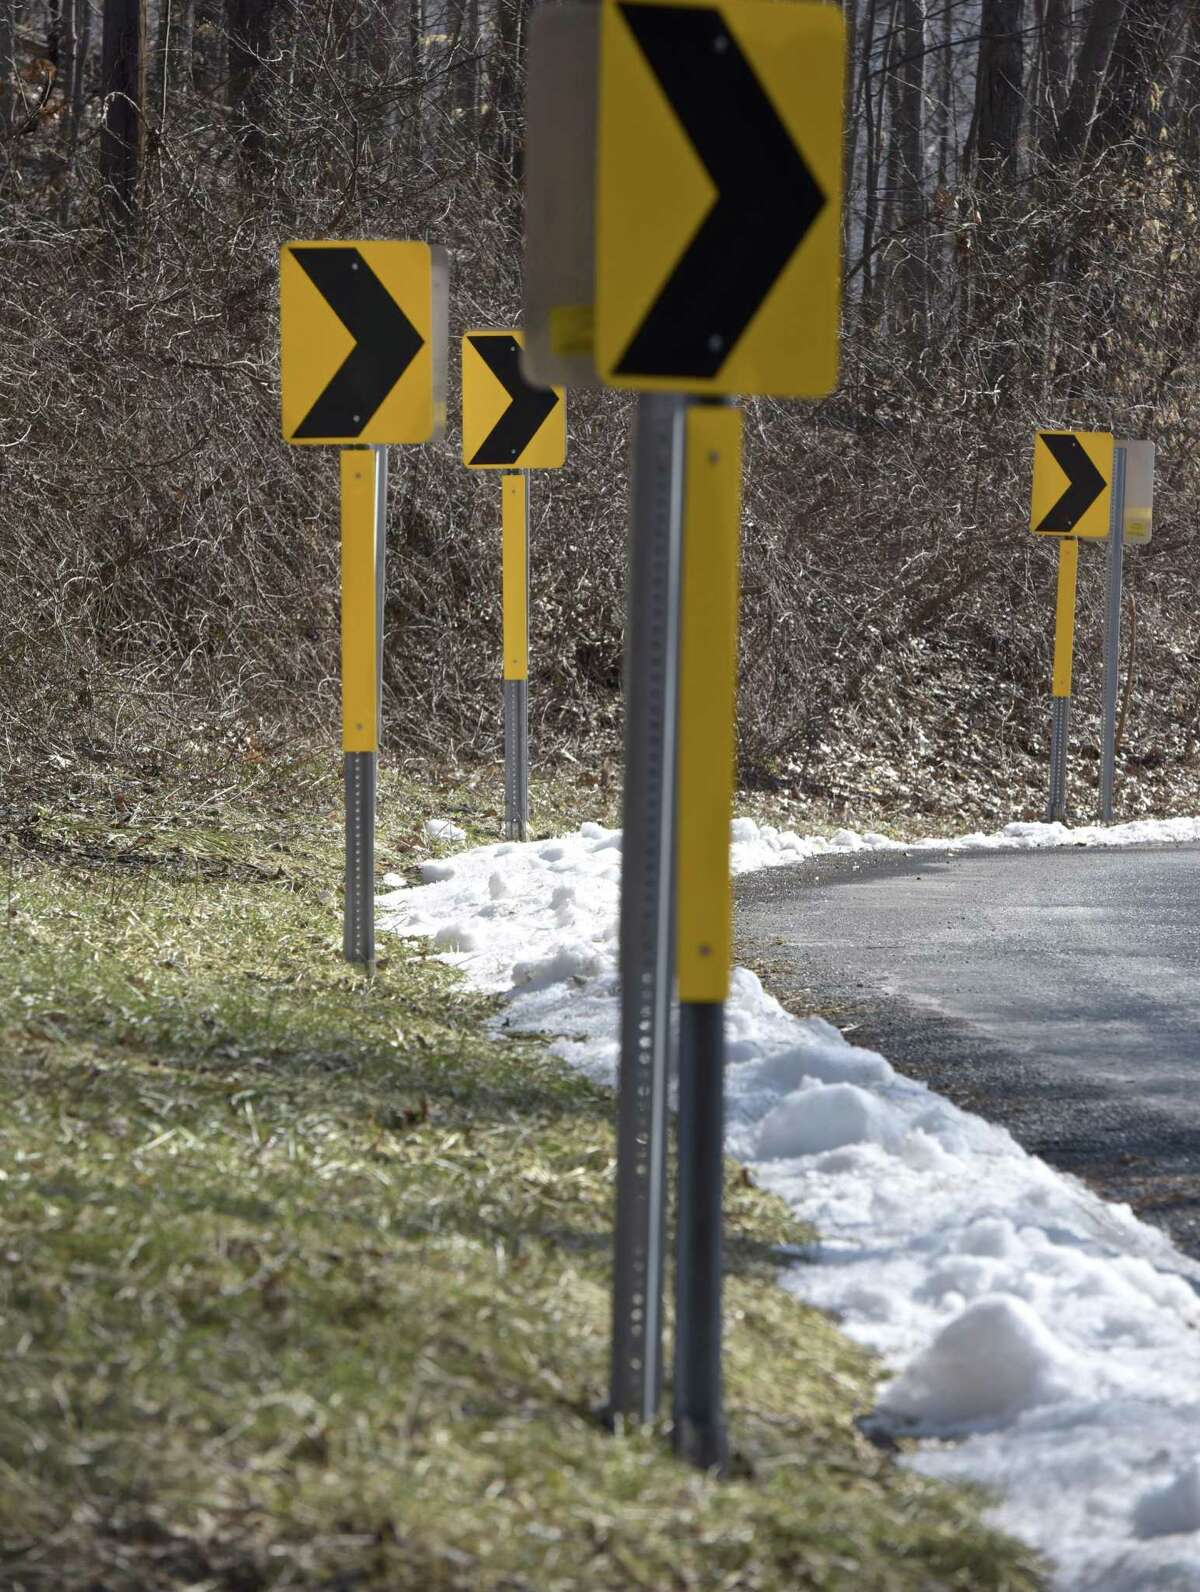 Curve signs on Feb. 5, part of federal grant to make roads safer, installed on Big Bear Hill Road in New Milford.